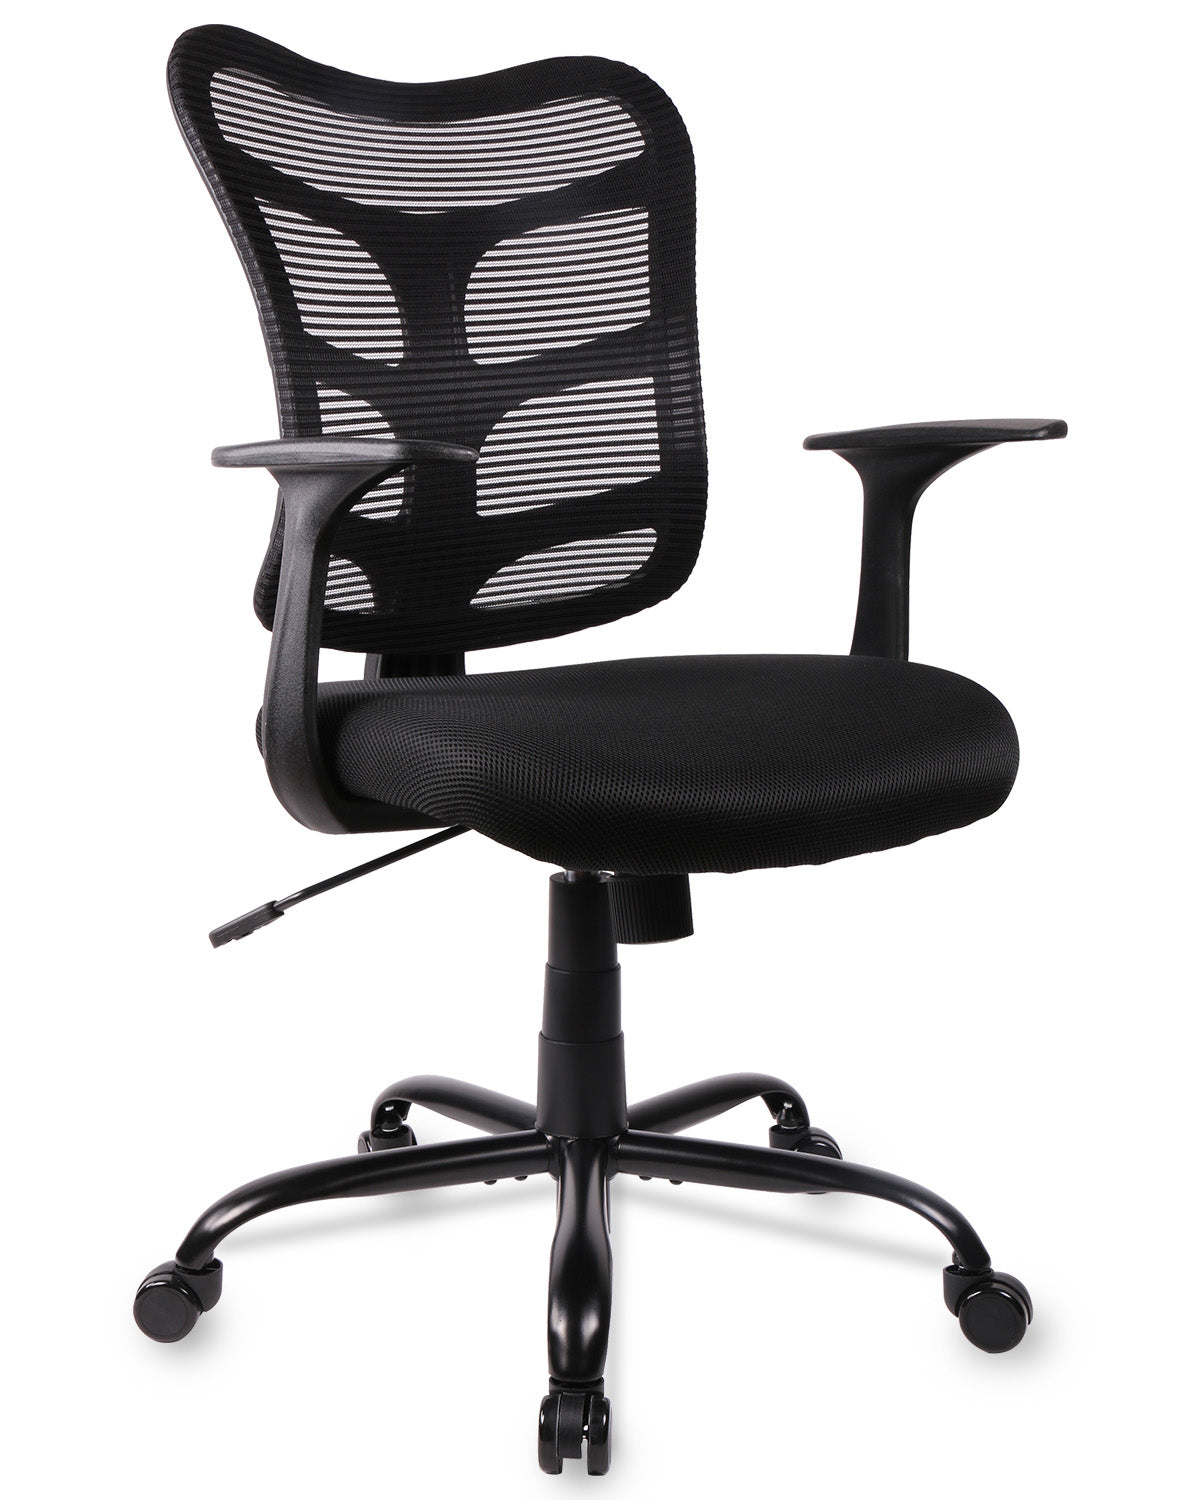 SmugChair Ergonomic Mid Back Mesh Office Chair